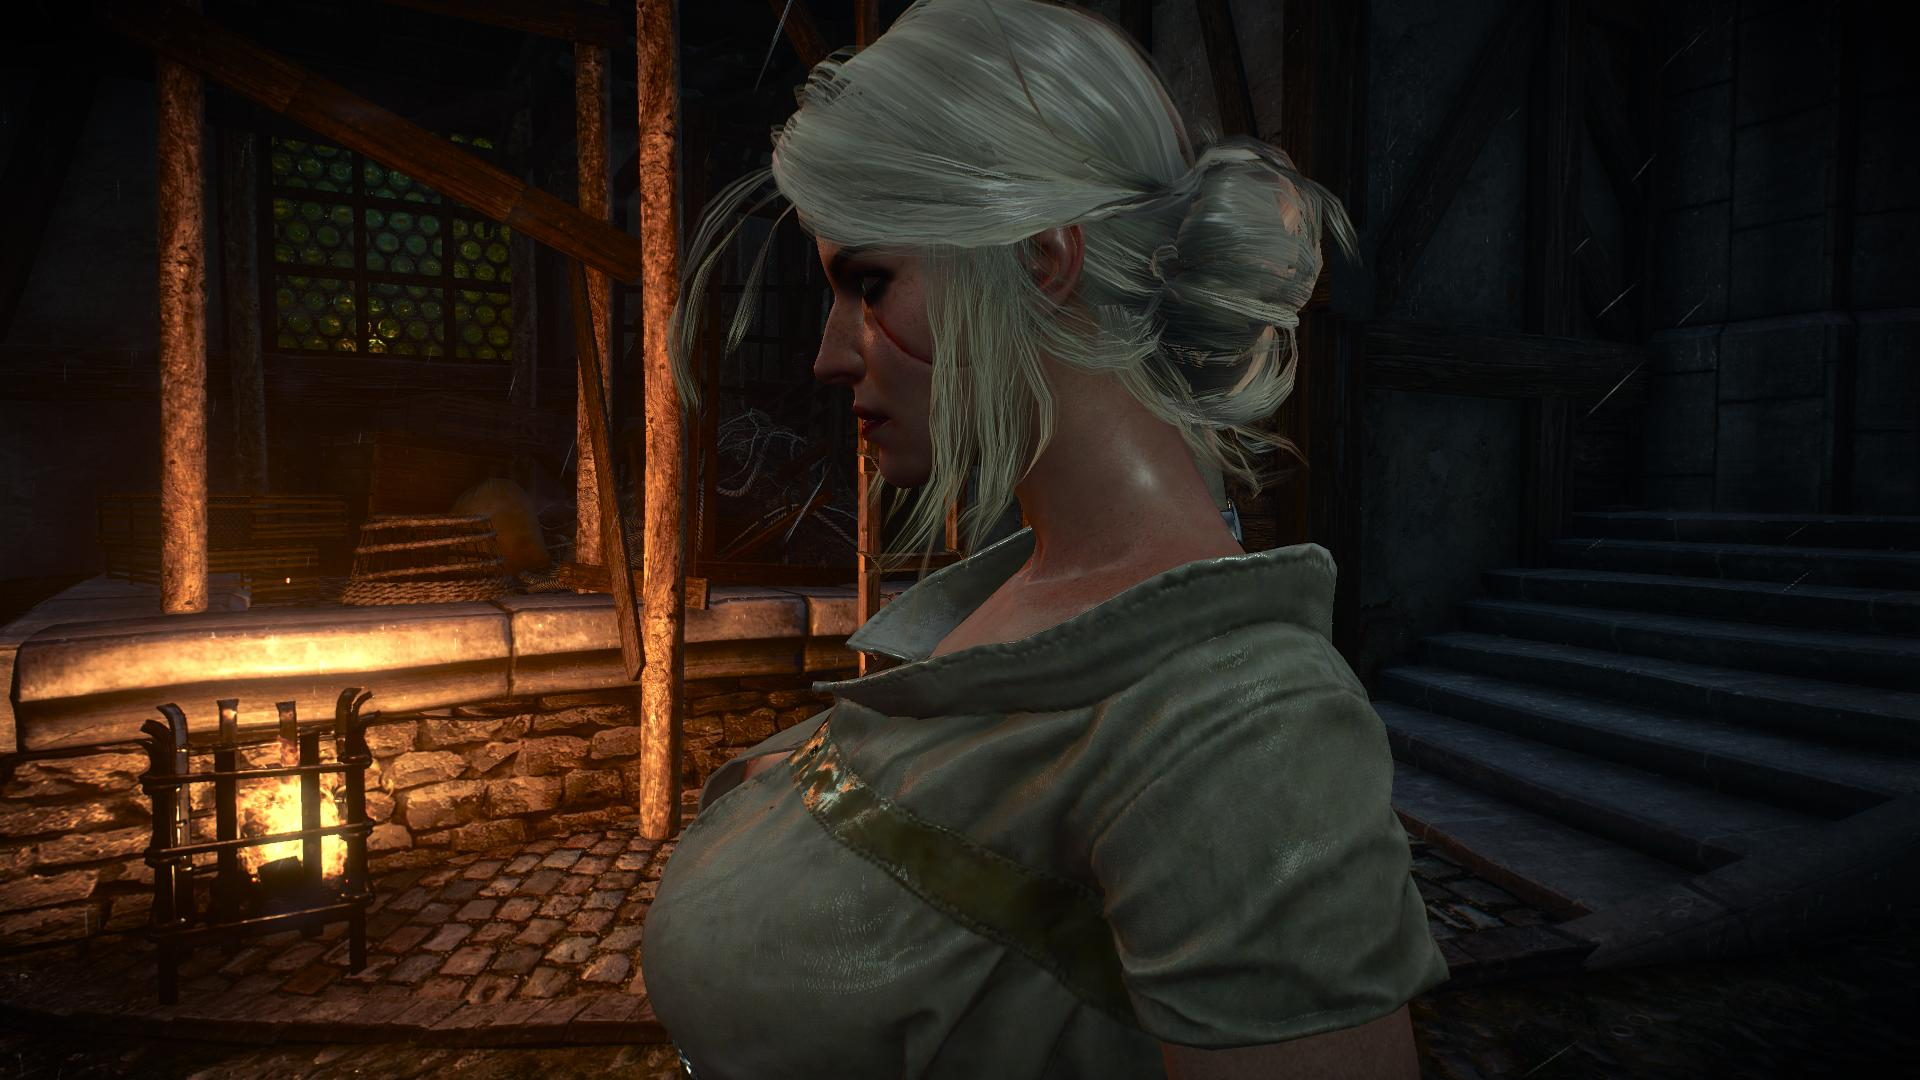 000111.Jpg - Witcher 3: Wild Hunt, the